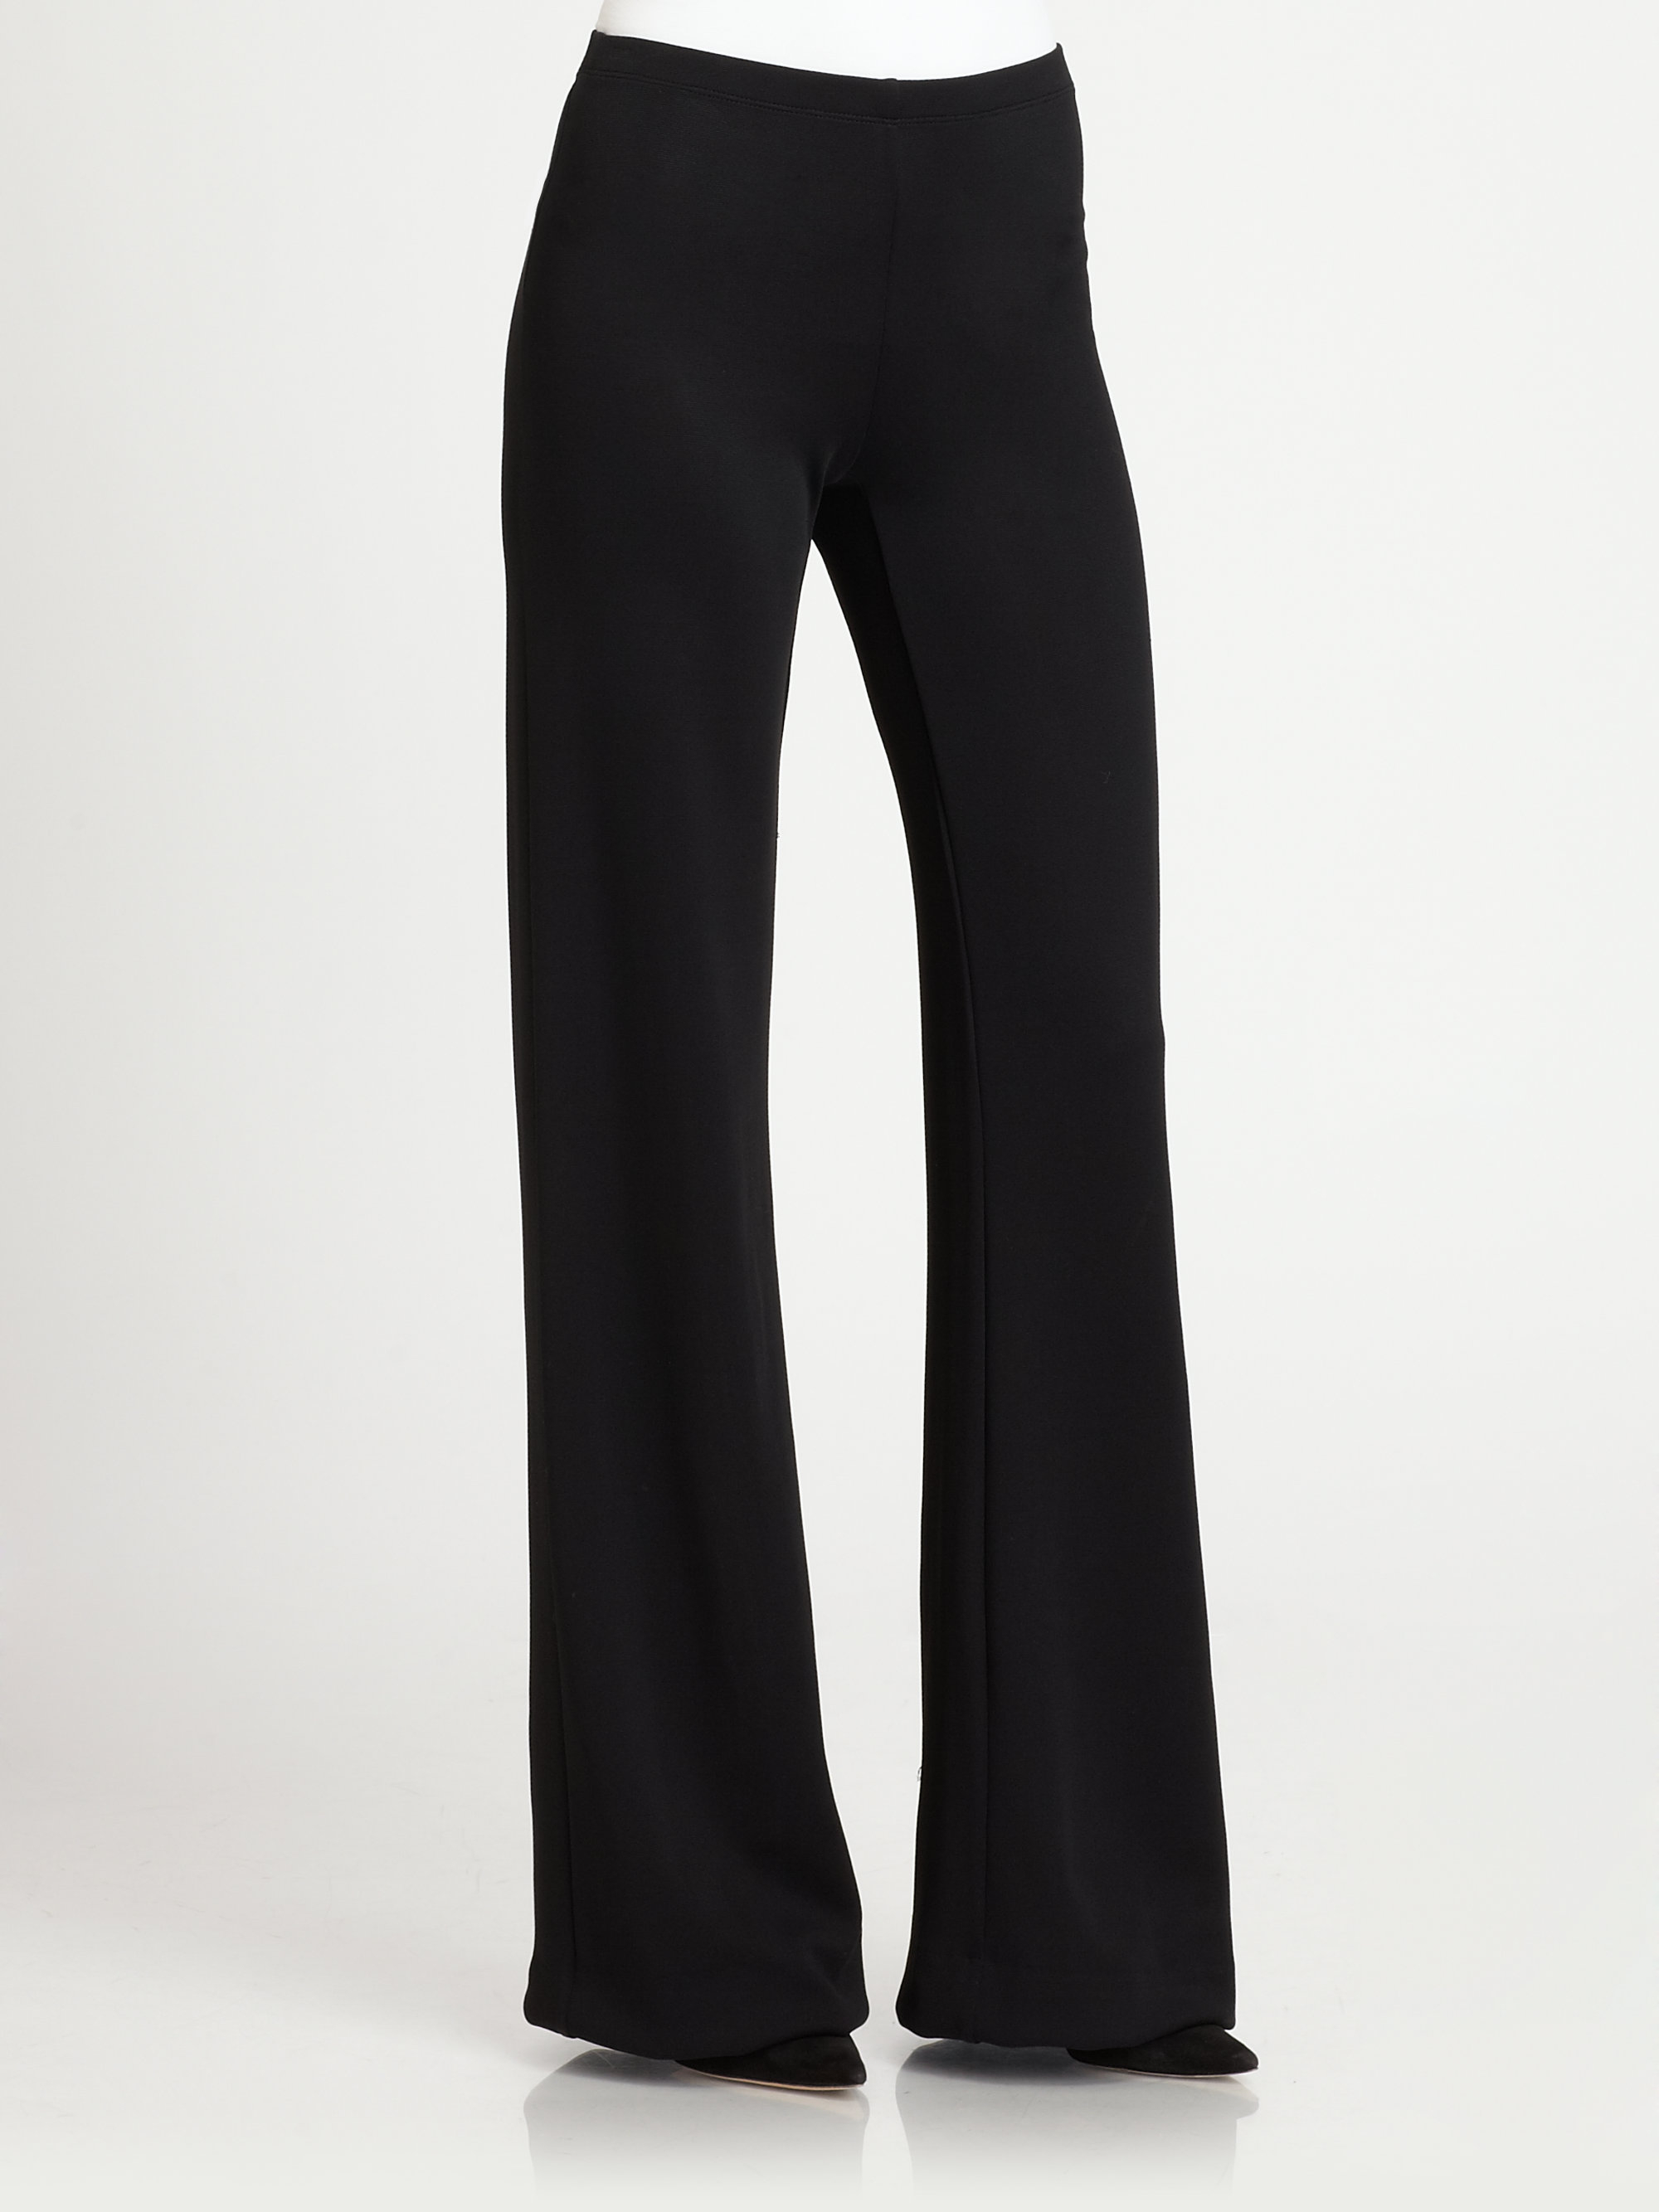 Donna karan Stretch Jersey Wide-leg Pants in Black | Lyst